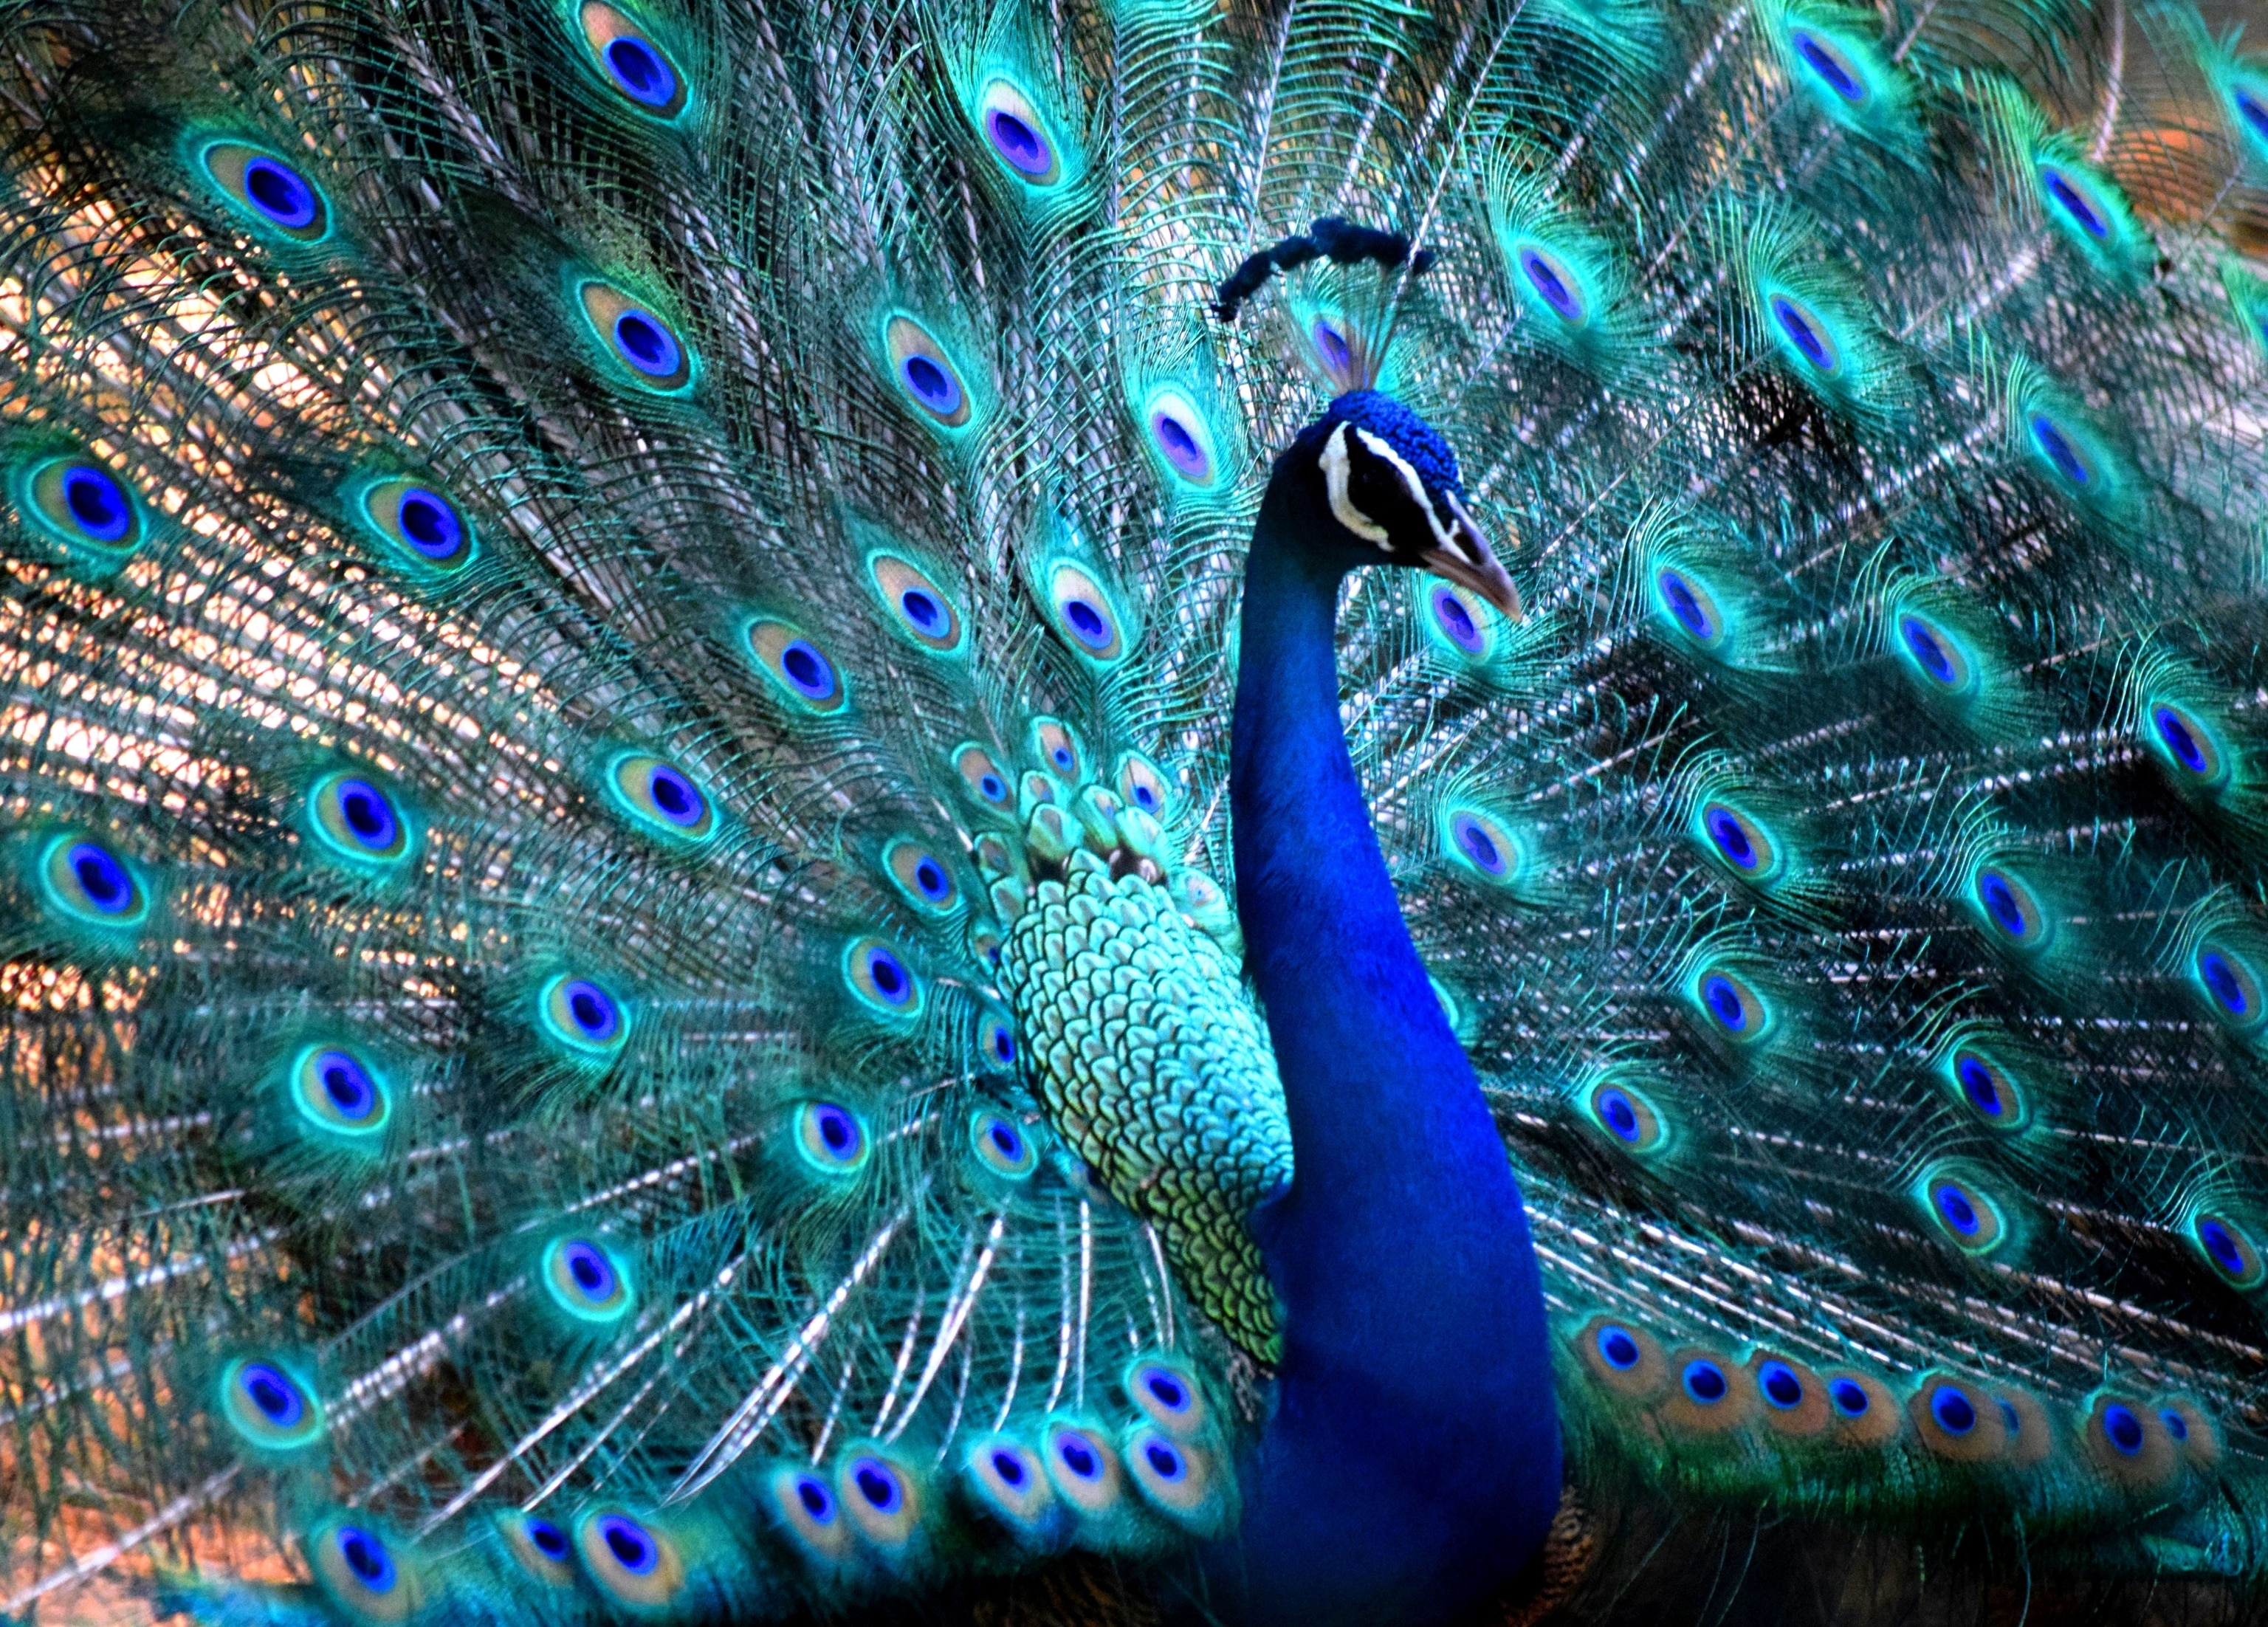 Peacocks National Geographic